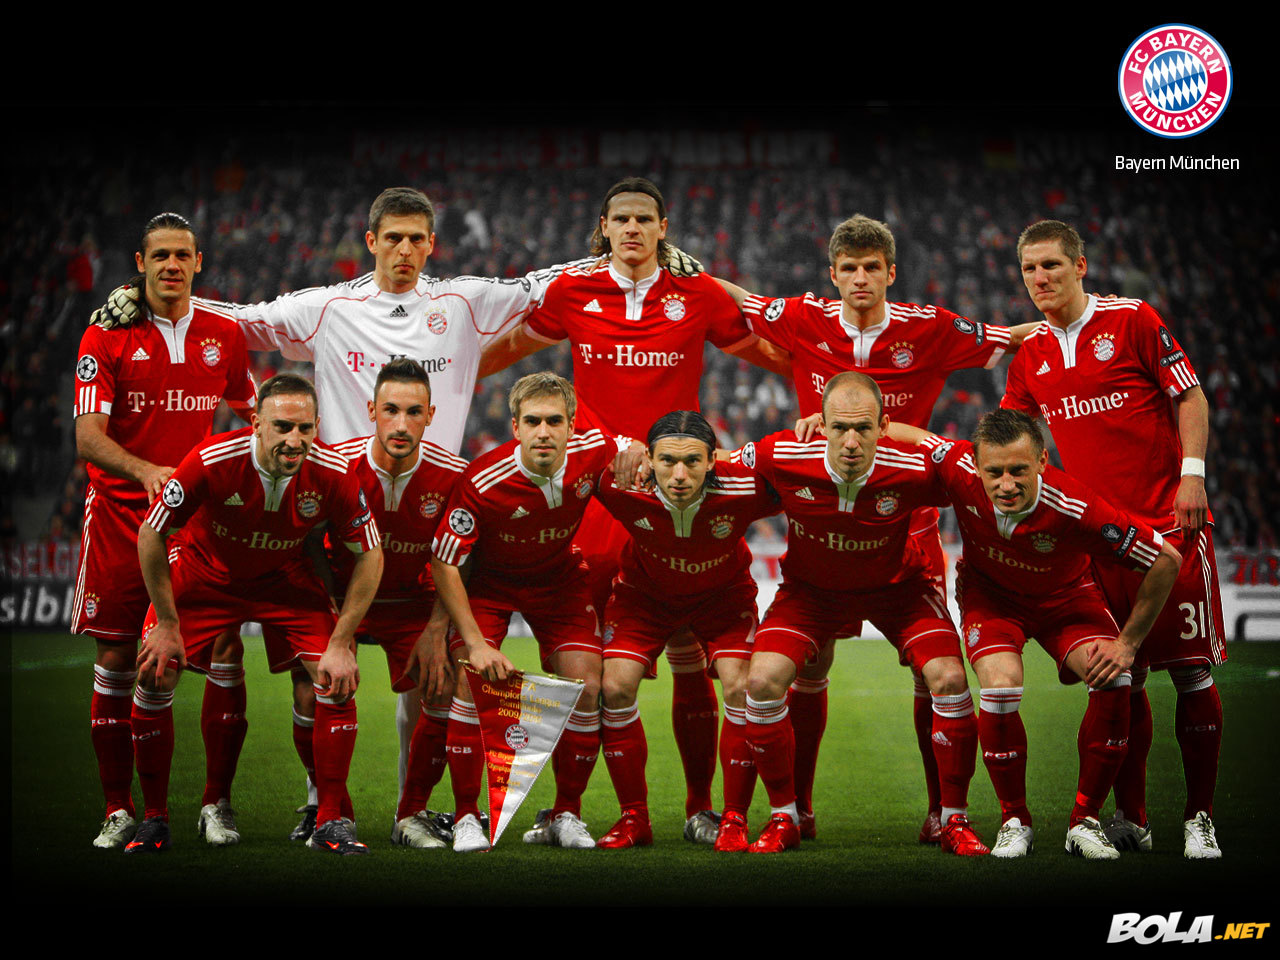 49+ FC Bayern Munich Wallpaper on WallpaperSafari